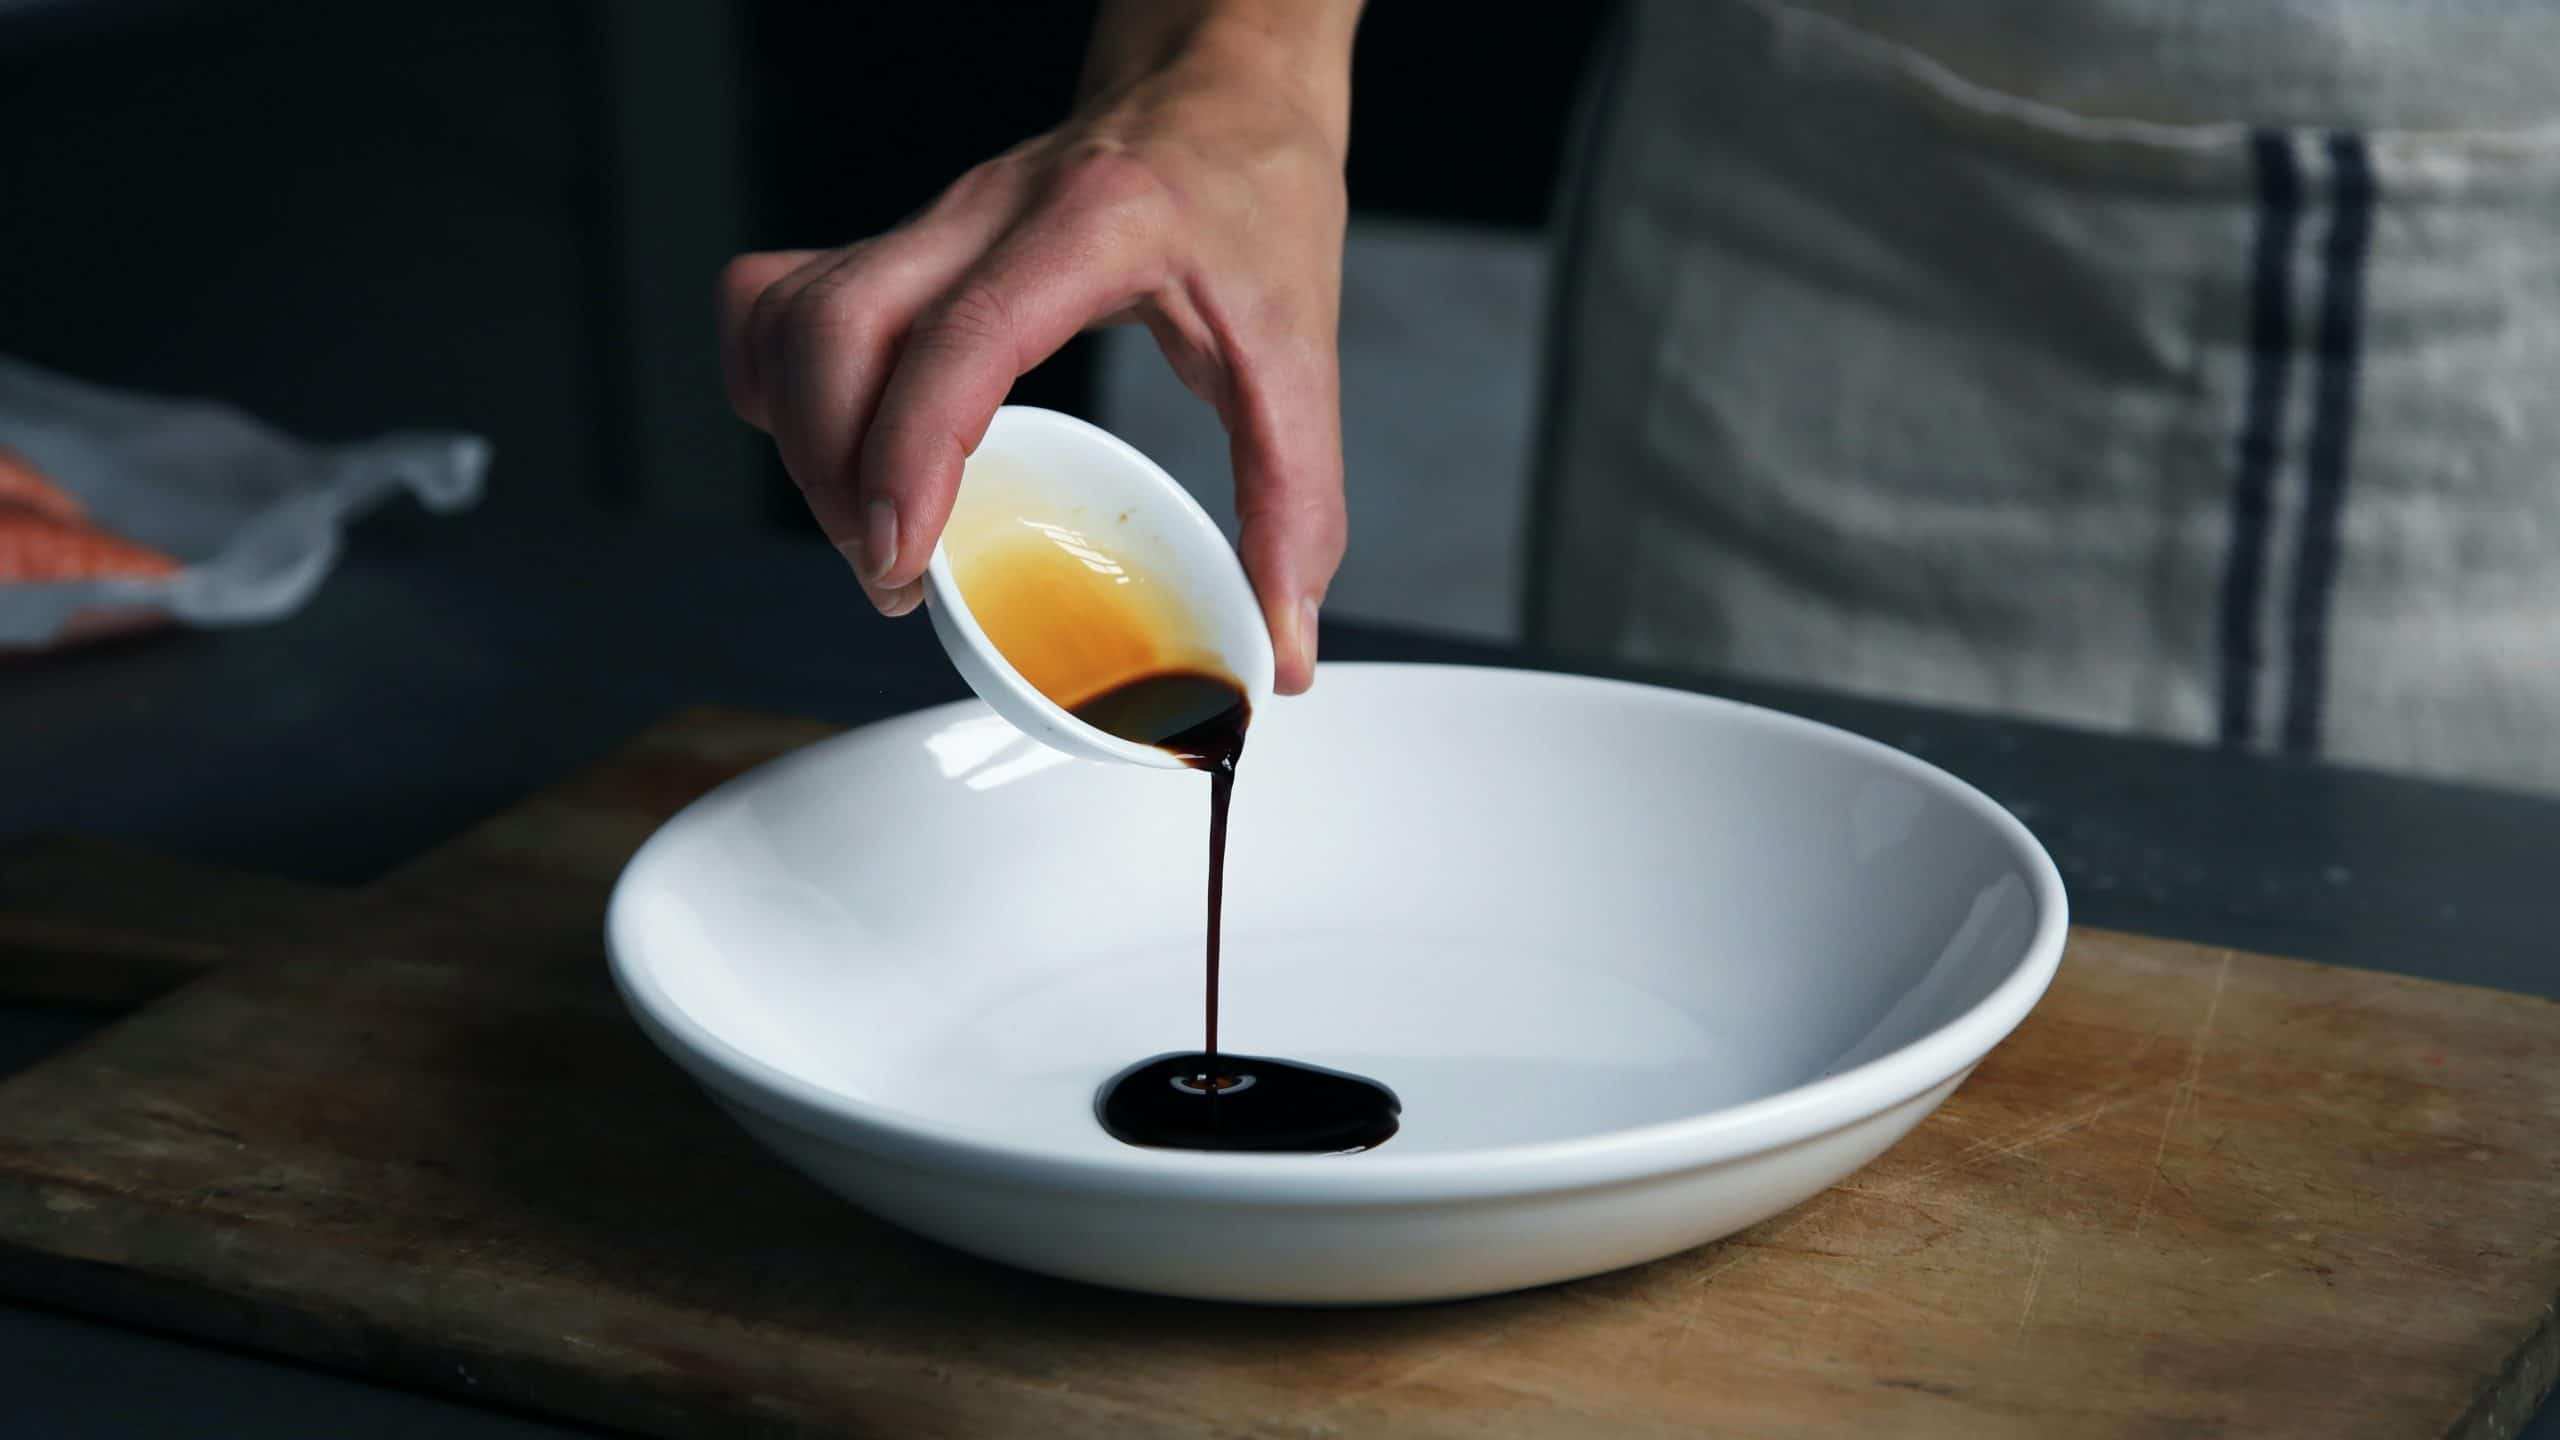 How To Store Soy Sauce